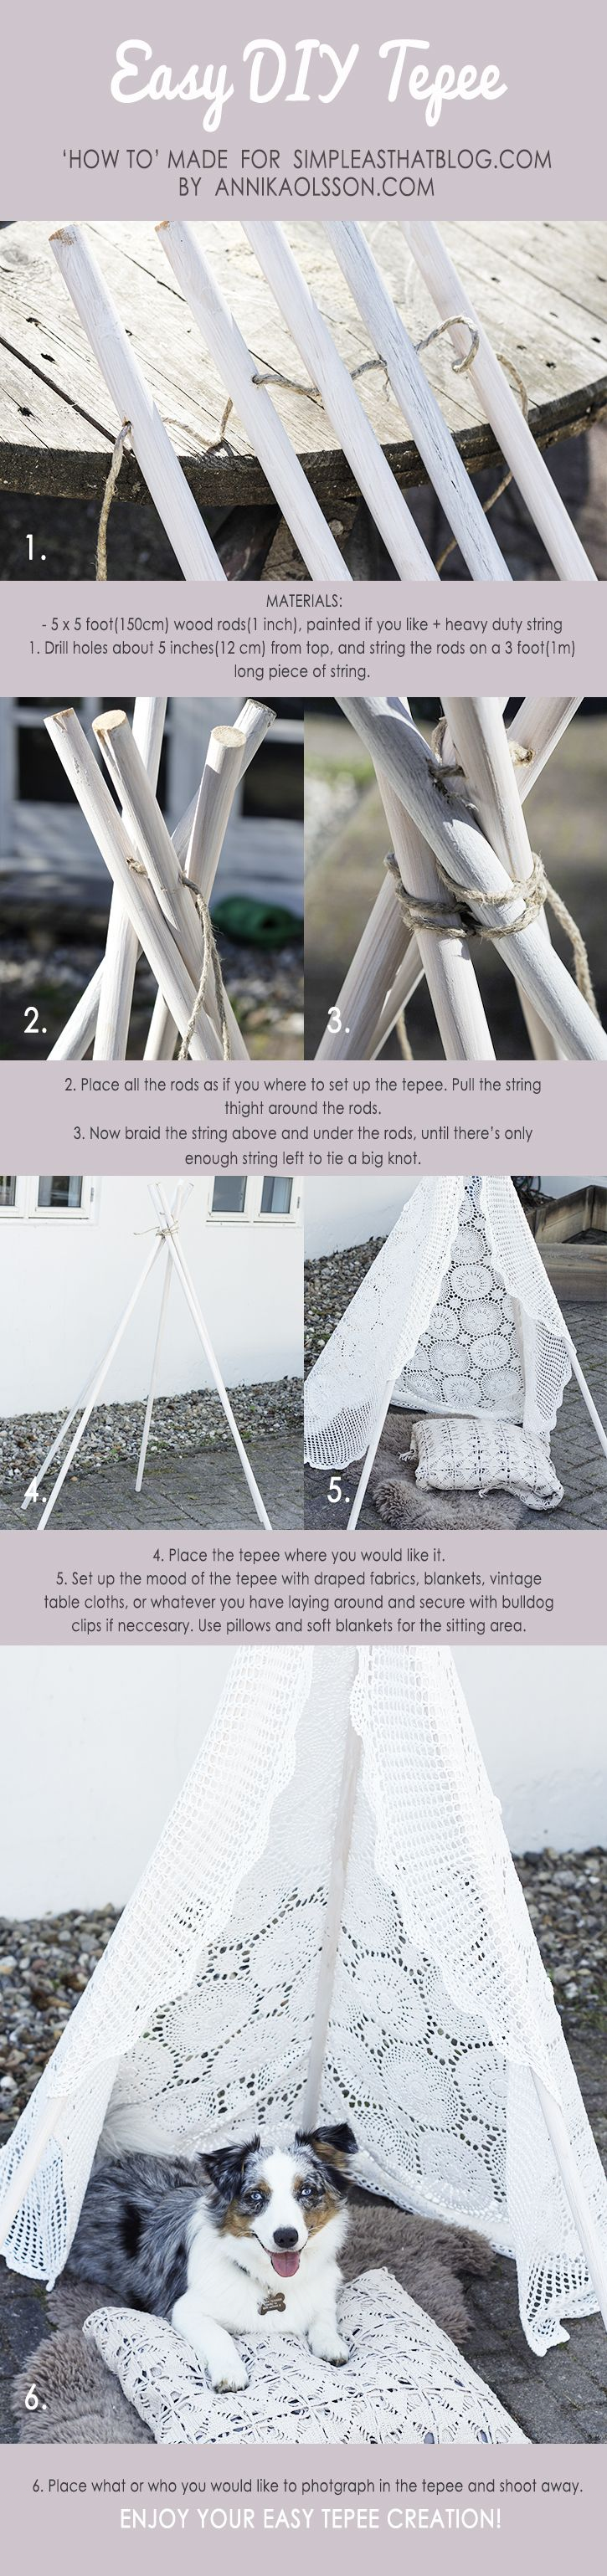 Easy DIY Tepee - simple as that